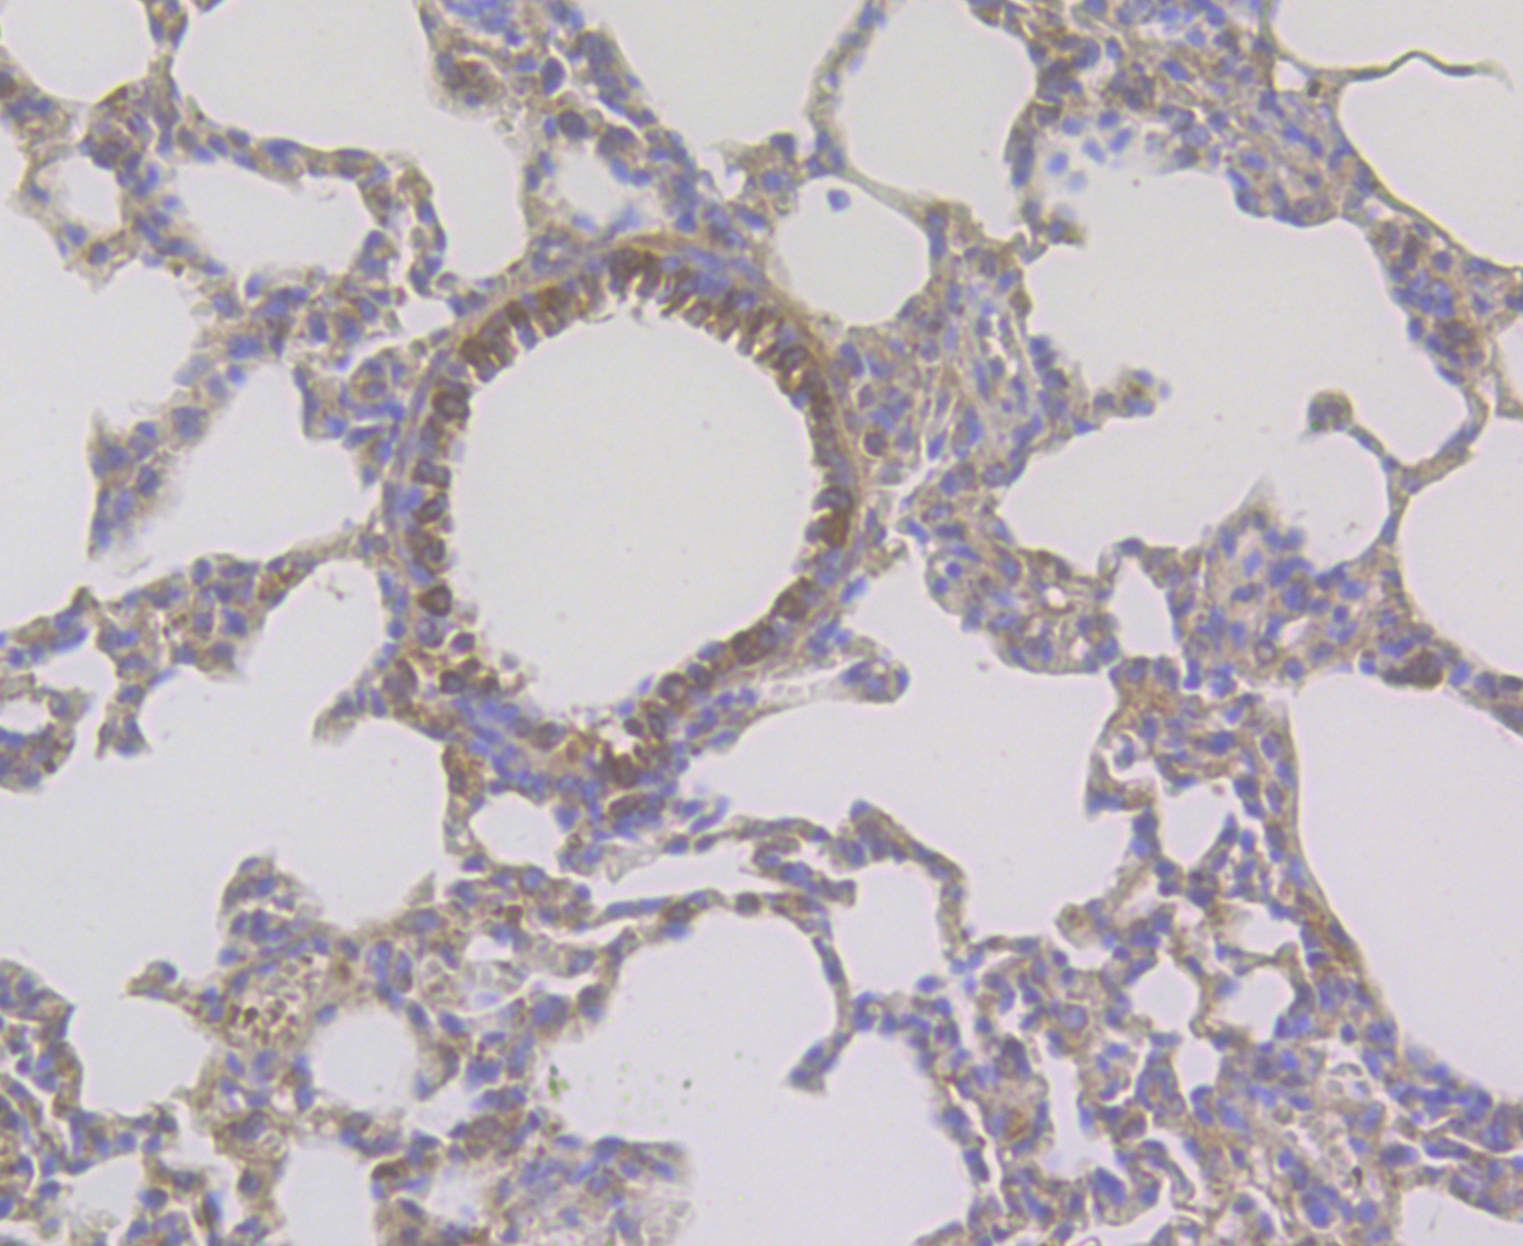 Immunohistochemical analysis of paraffin-embedded rat lung tissue using anti-CD163 antibody. The section was pre-treated using heat mediated antigen retrieval with Tris-EDTA buffer (pH 8.0-8.4) for 20 minutes.The tissues were blocked in 5% BSA for 30 minutes at room temperature, washed with ddH2O and PBS, and then probed with the antibody (ER1804-03) at 1/50 dilution, for 30 minutes at room temperature and detected using an HRP conjugated compact polymer system. DAB was used as the chromogen. Counter stained with hematoxylin and mounted with DPX.